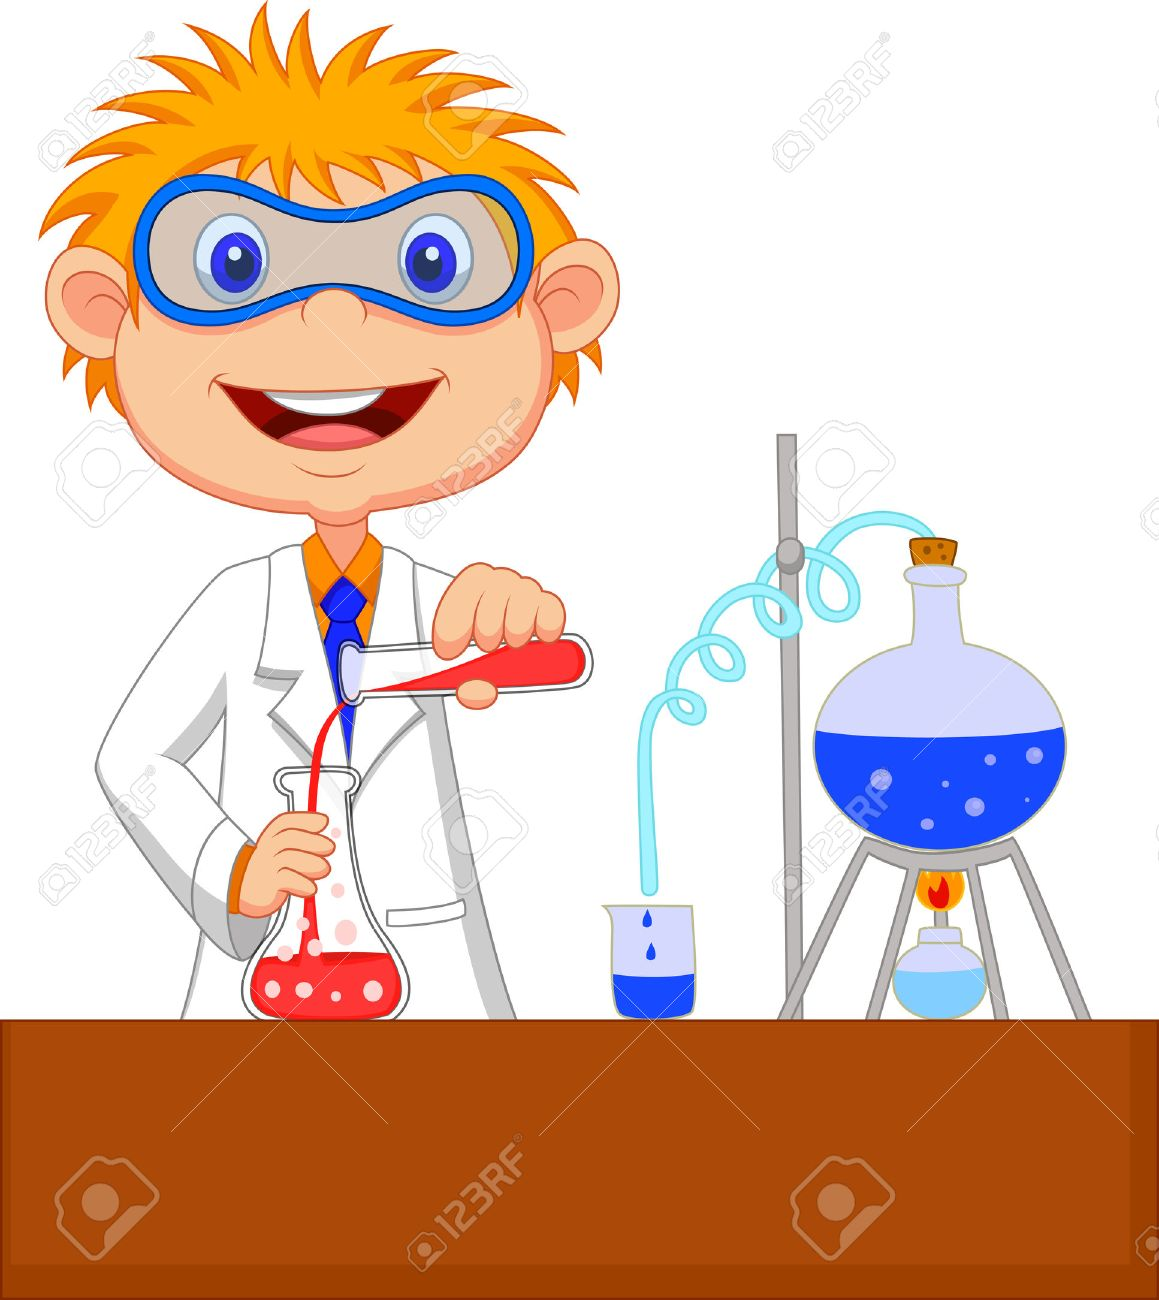 Pics photos clip art cartoon scientist with question mark stock - Scientific Boy Cartoon Doing Chemical Experiment